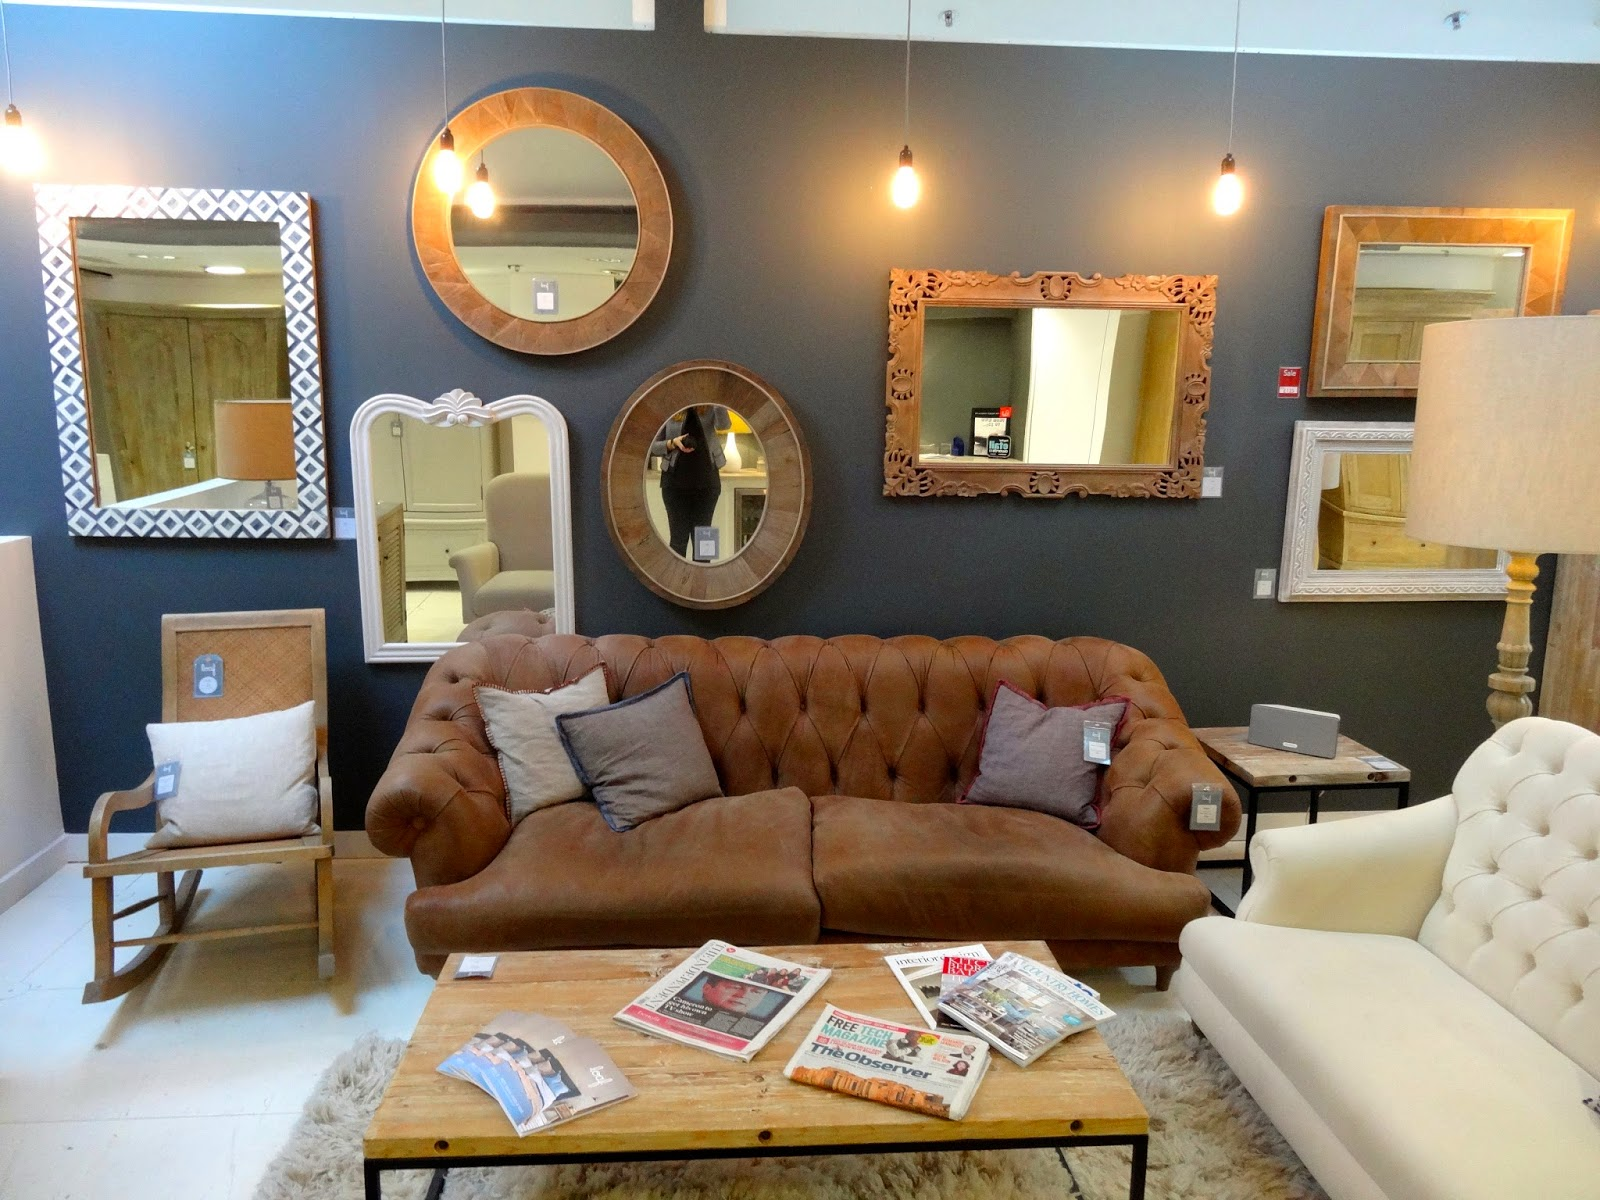 Sofa Shopping At Loaf Notting Hill Cagney And Lace